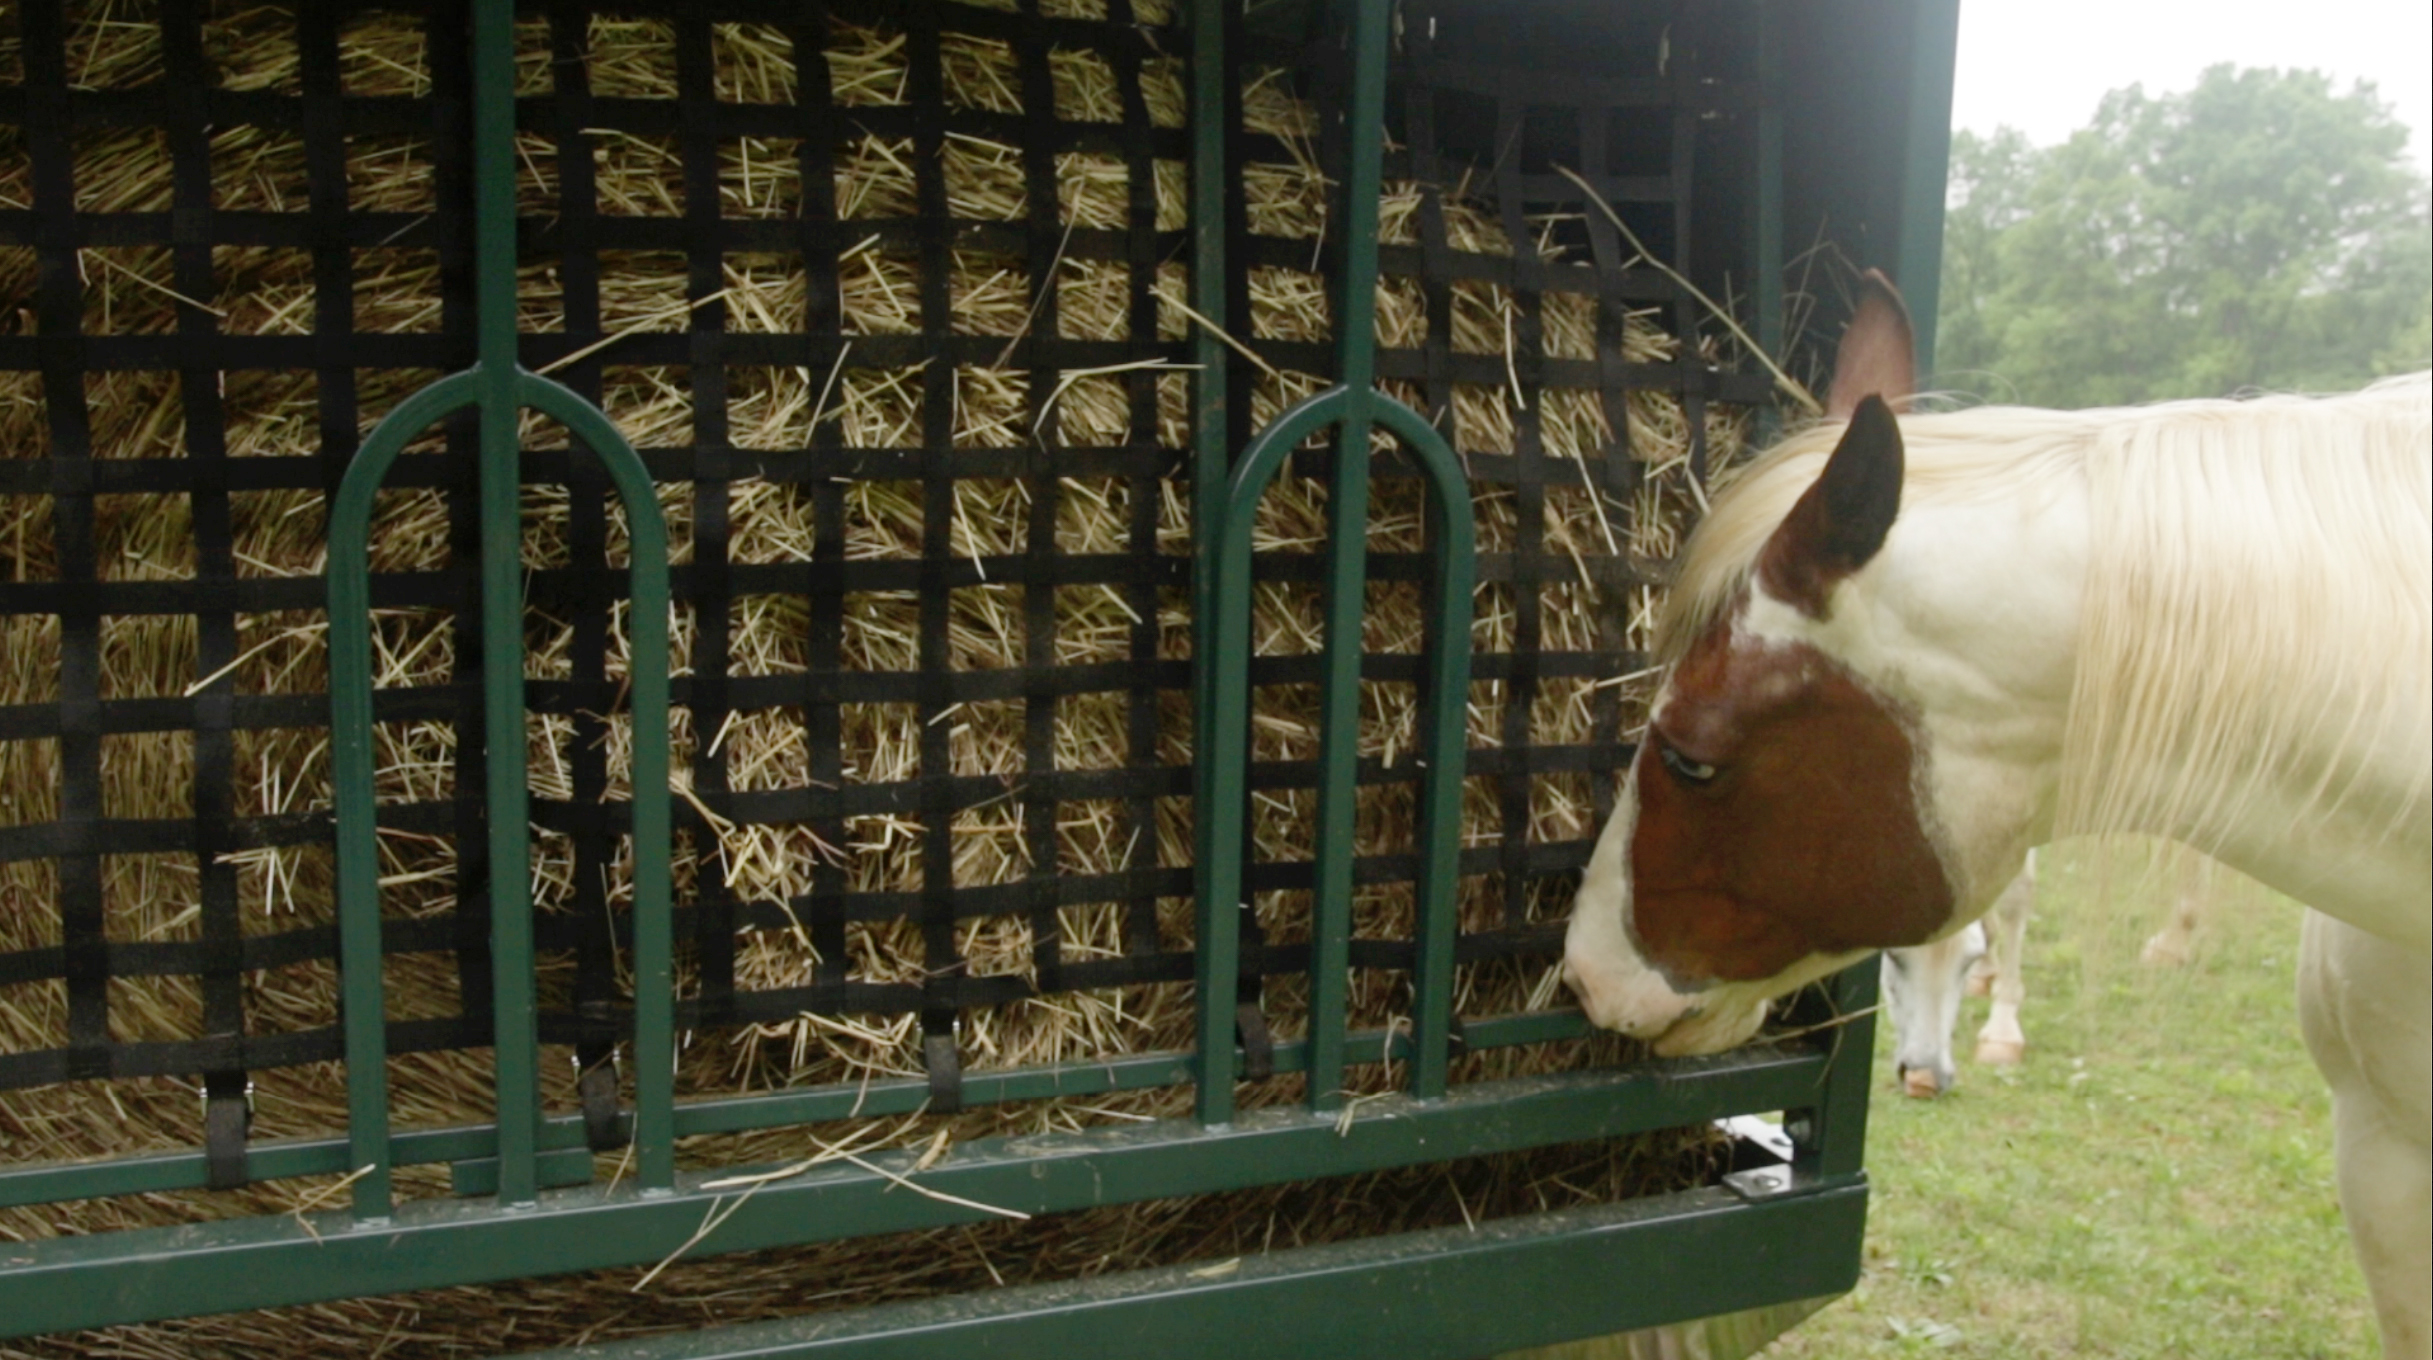 horses protecting teeth while eating from slow feeder copy